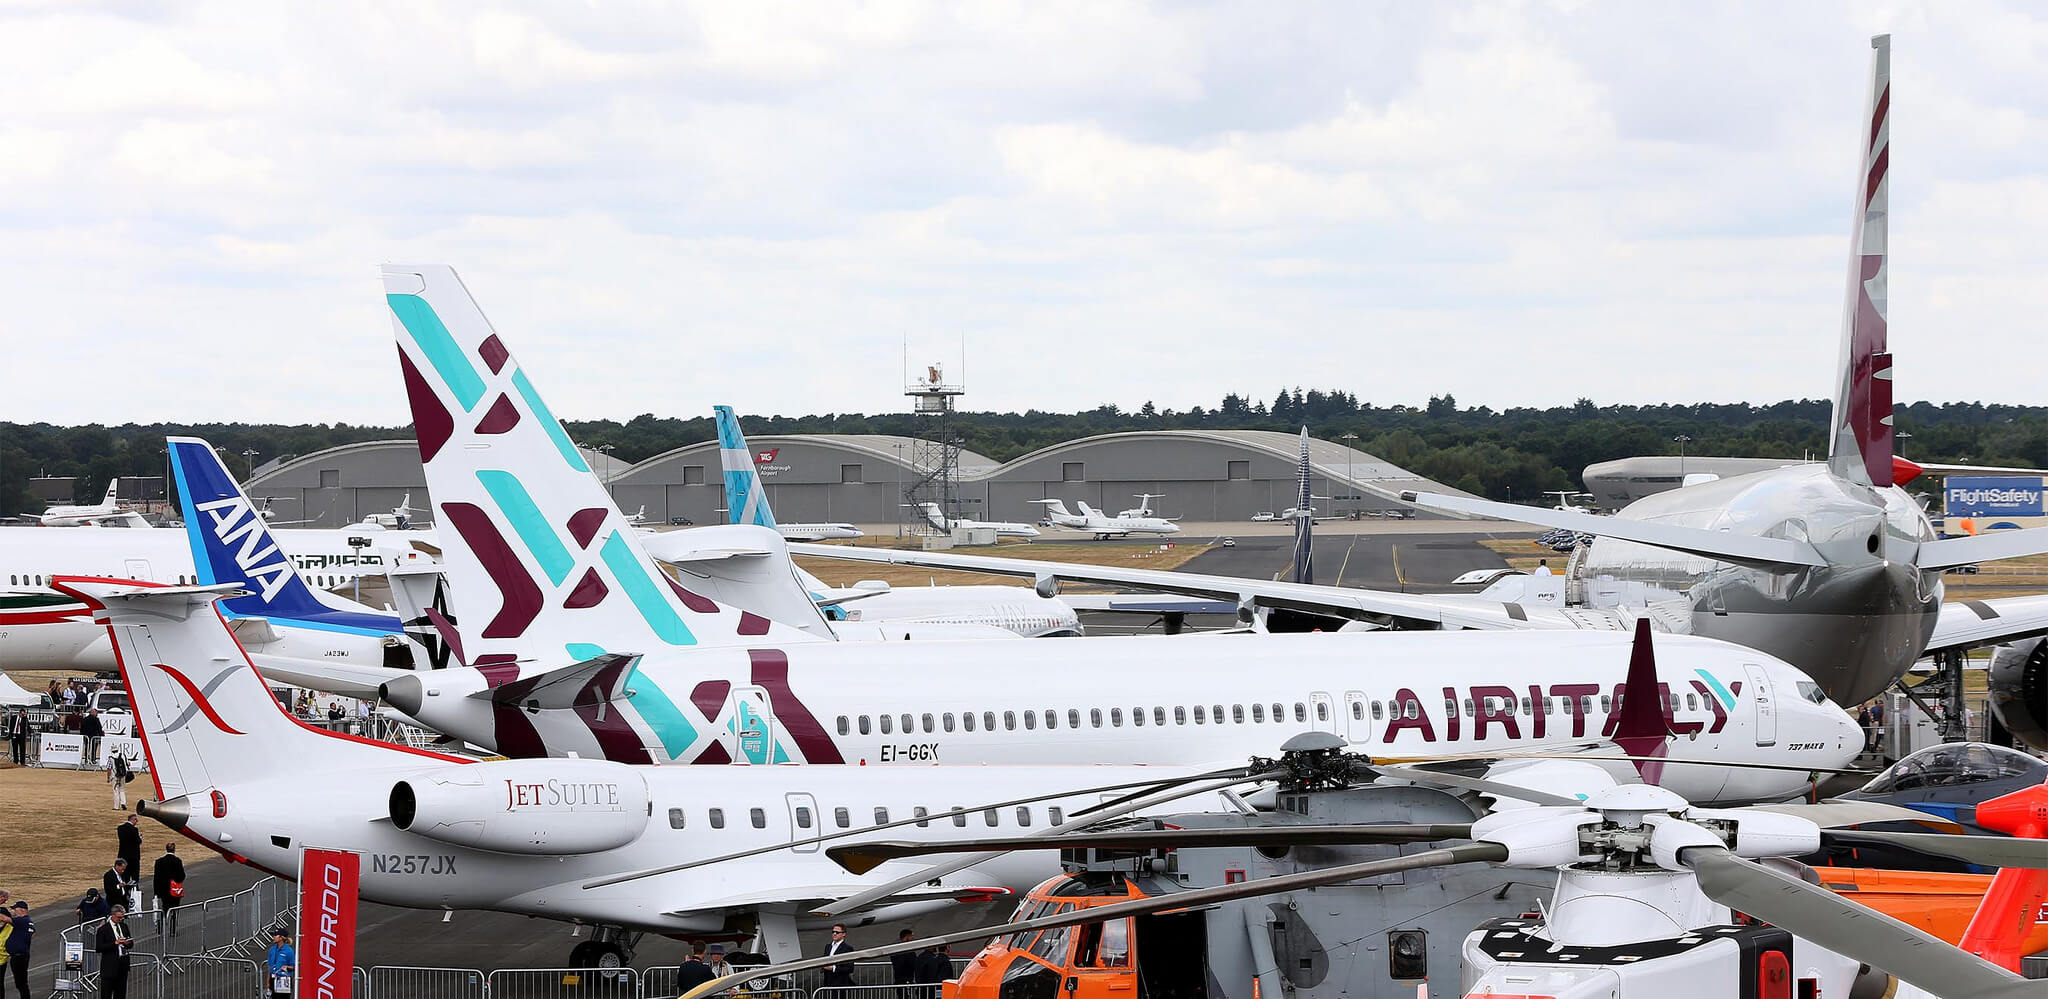 Air Italy's new Boeing showcased at Farnborough